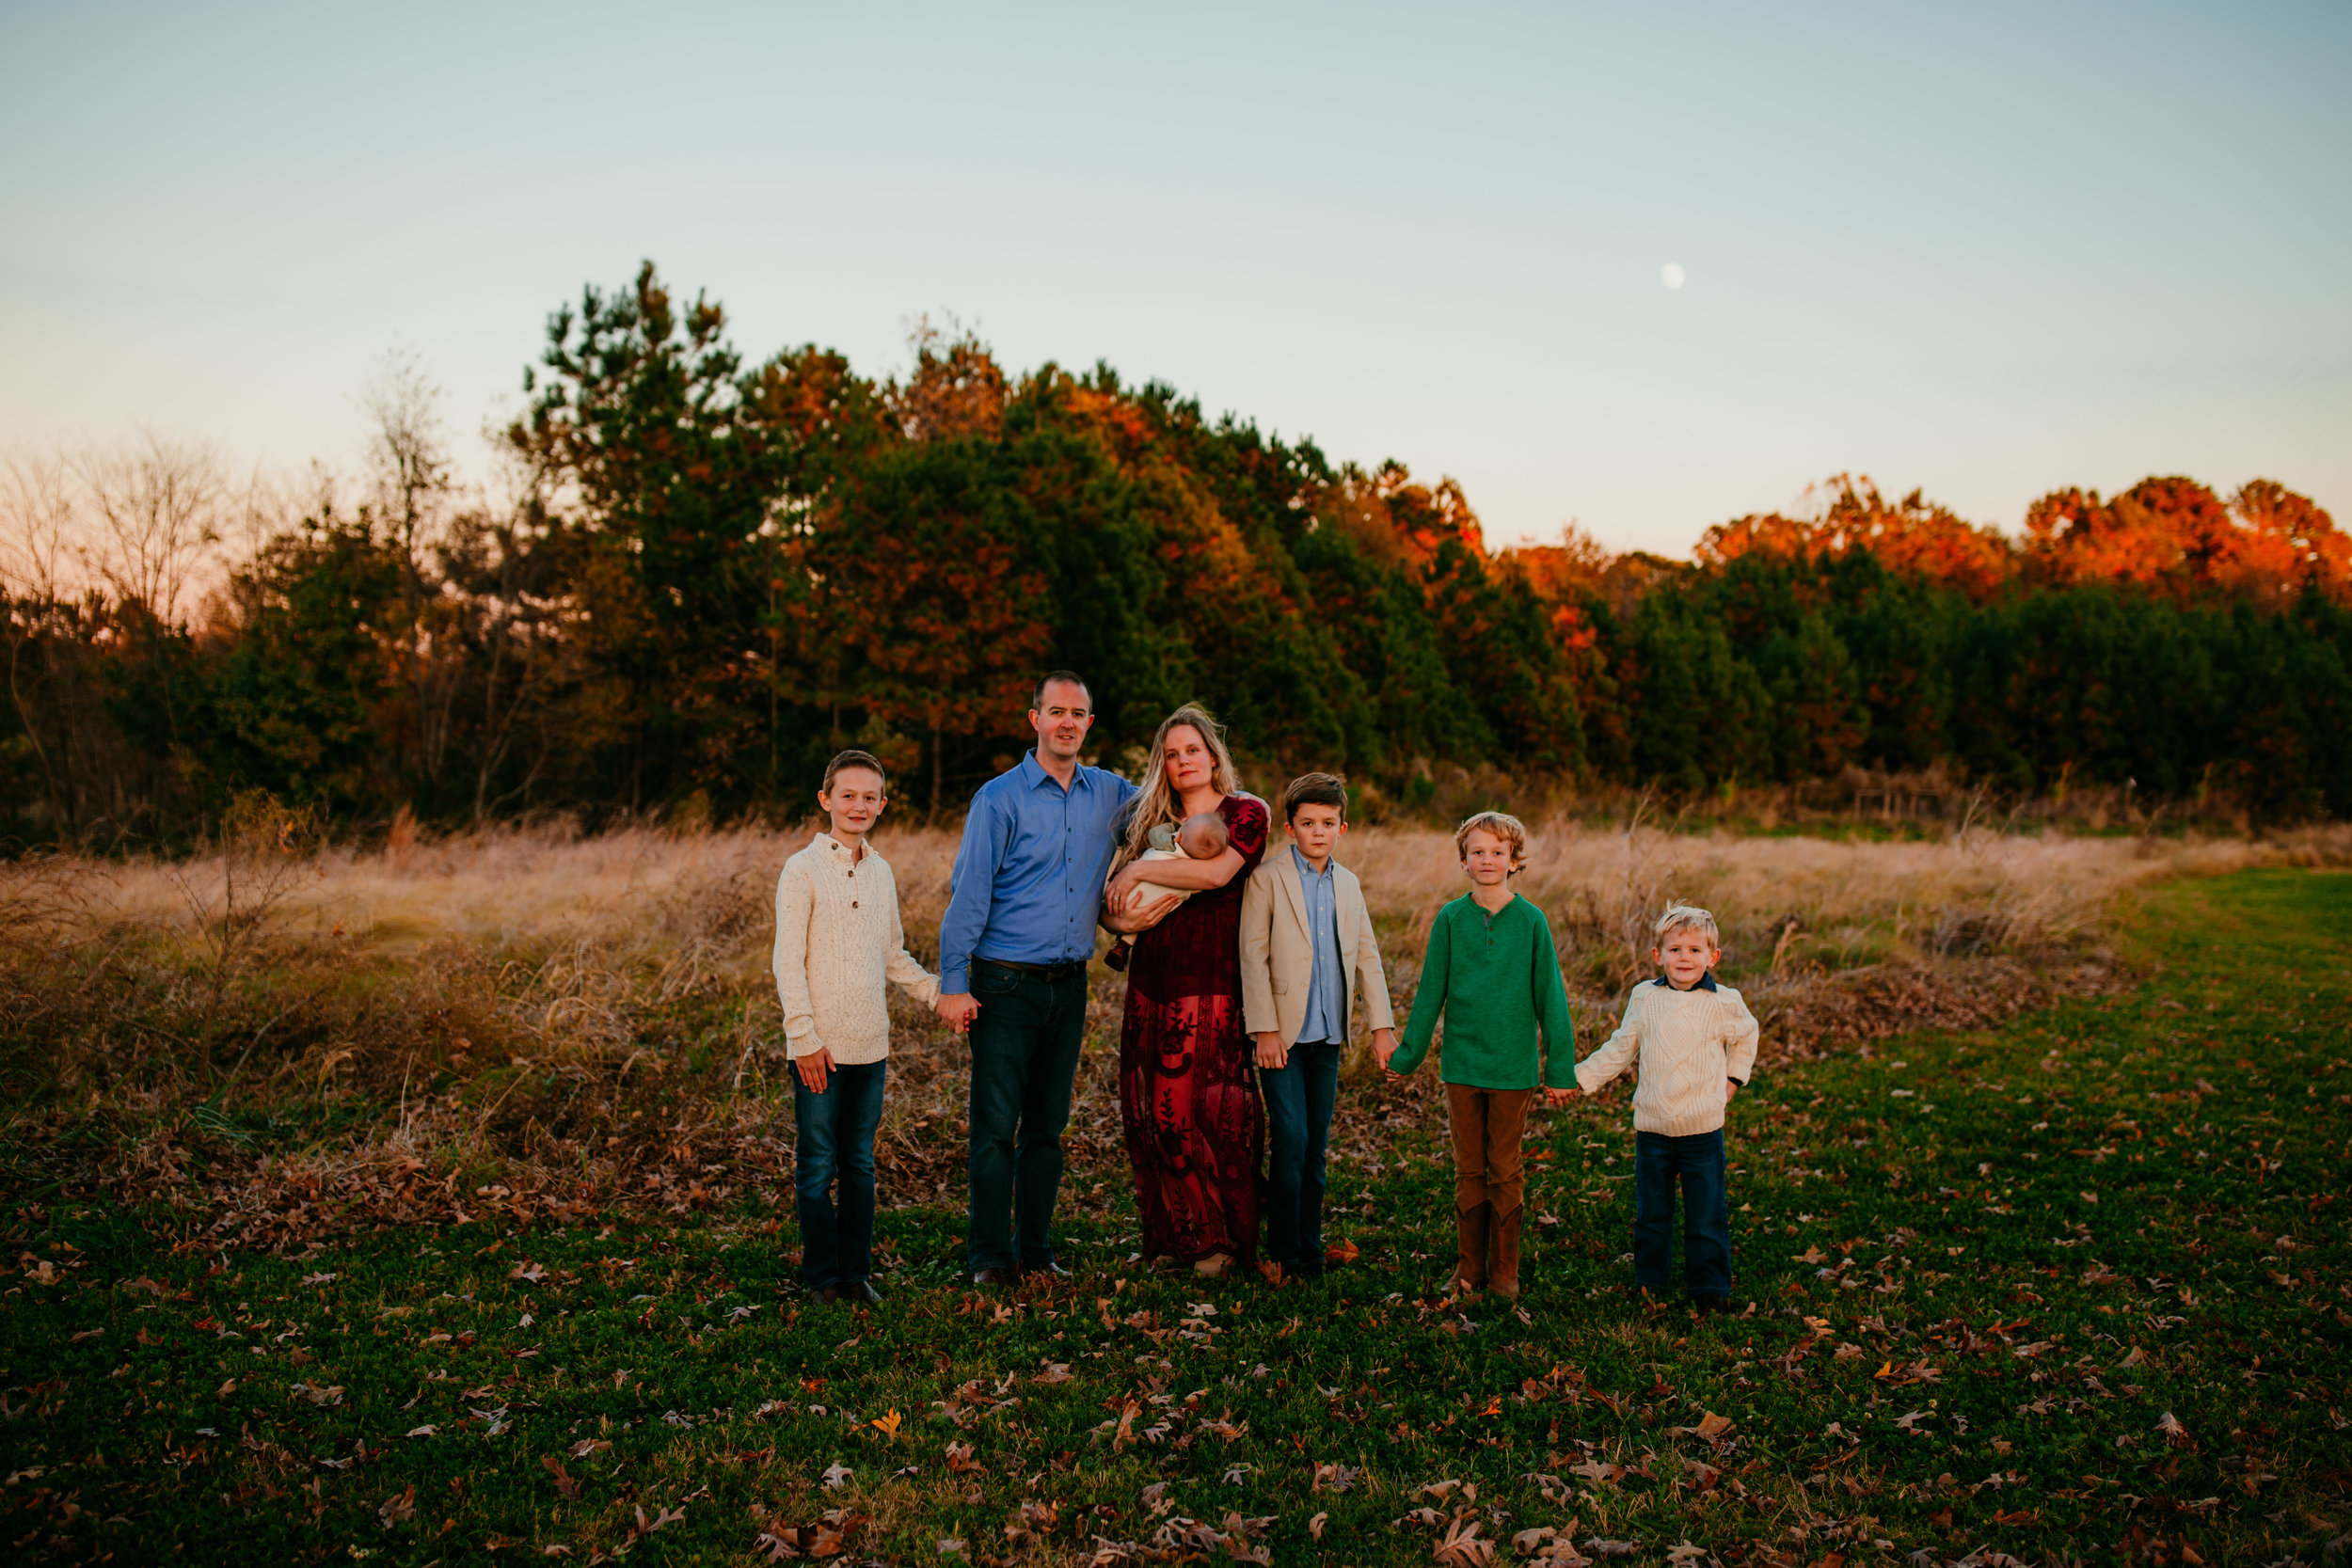 Fall Mini Session Day 2019 | raleigh familyphotography | Durham family photography | Hanna Hill Photography